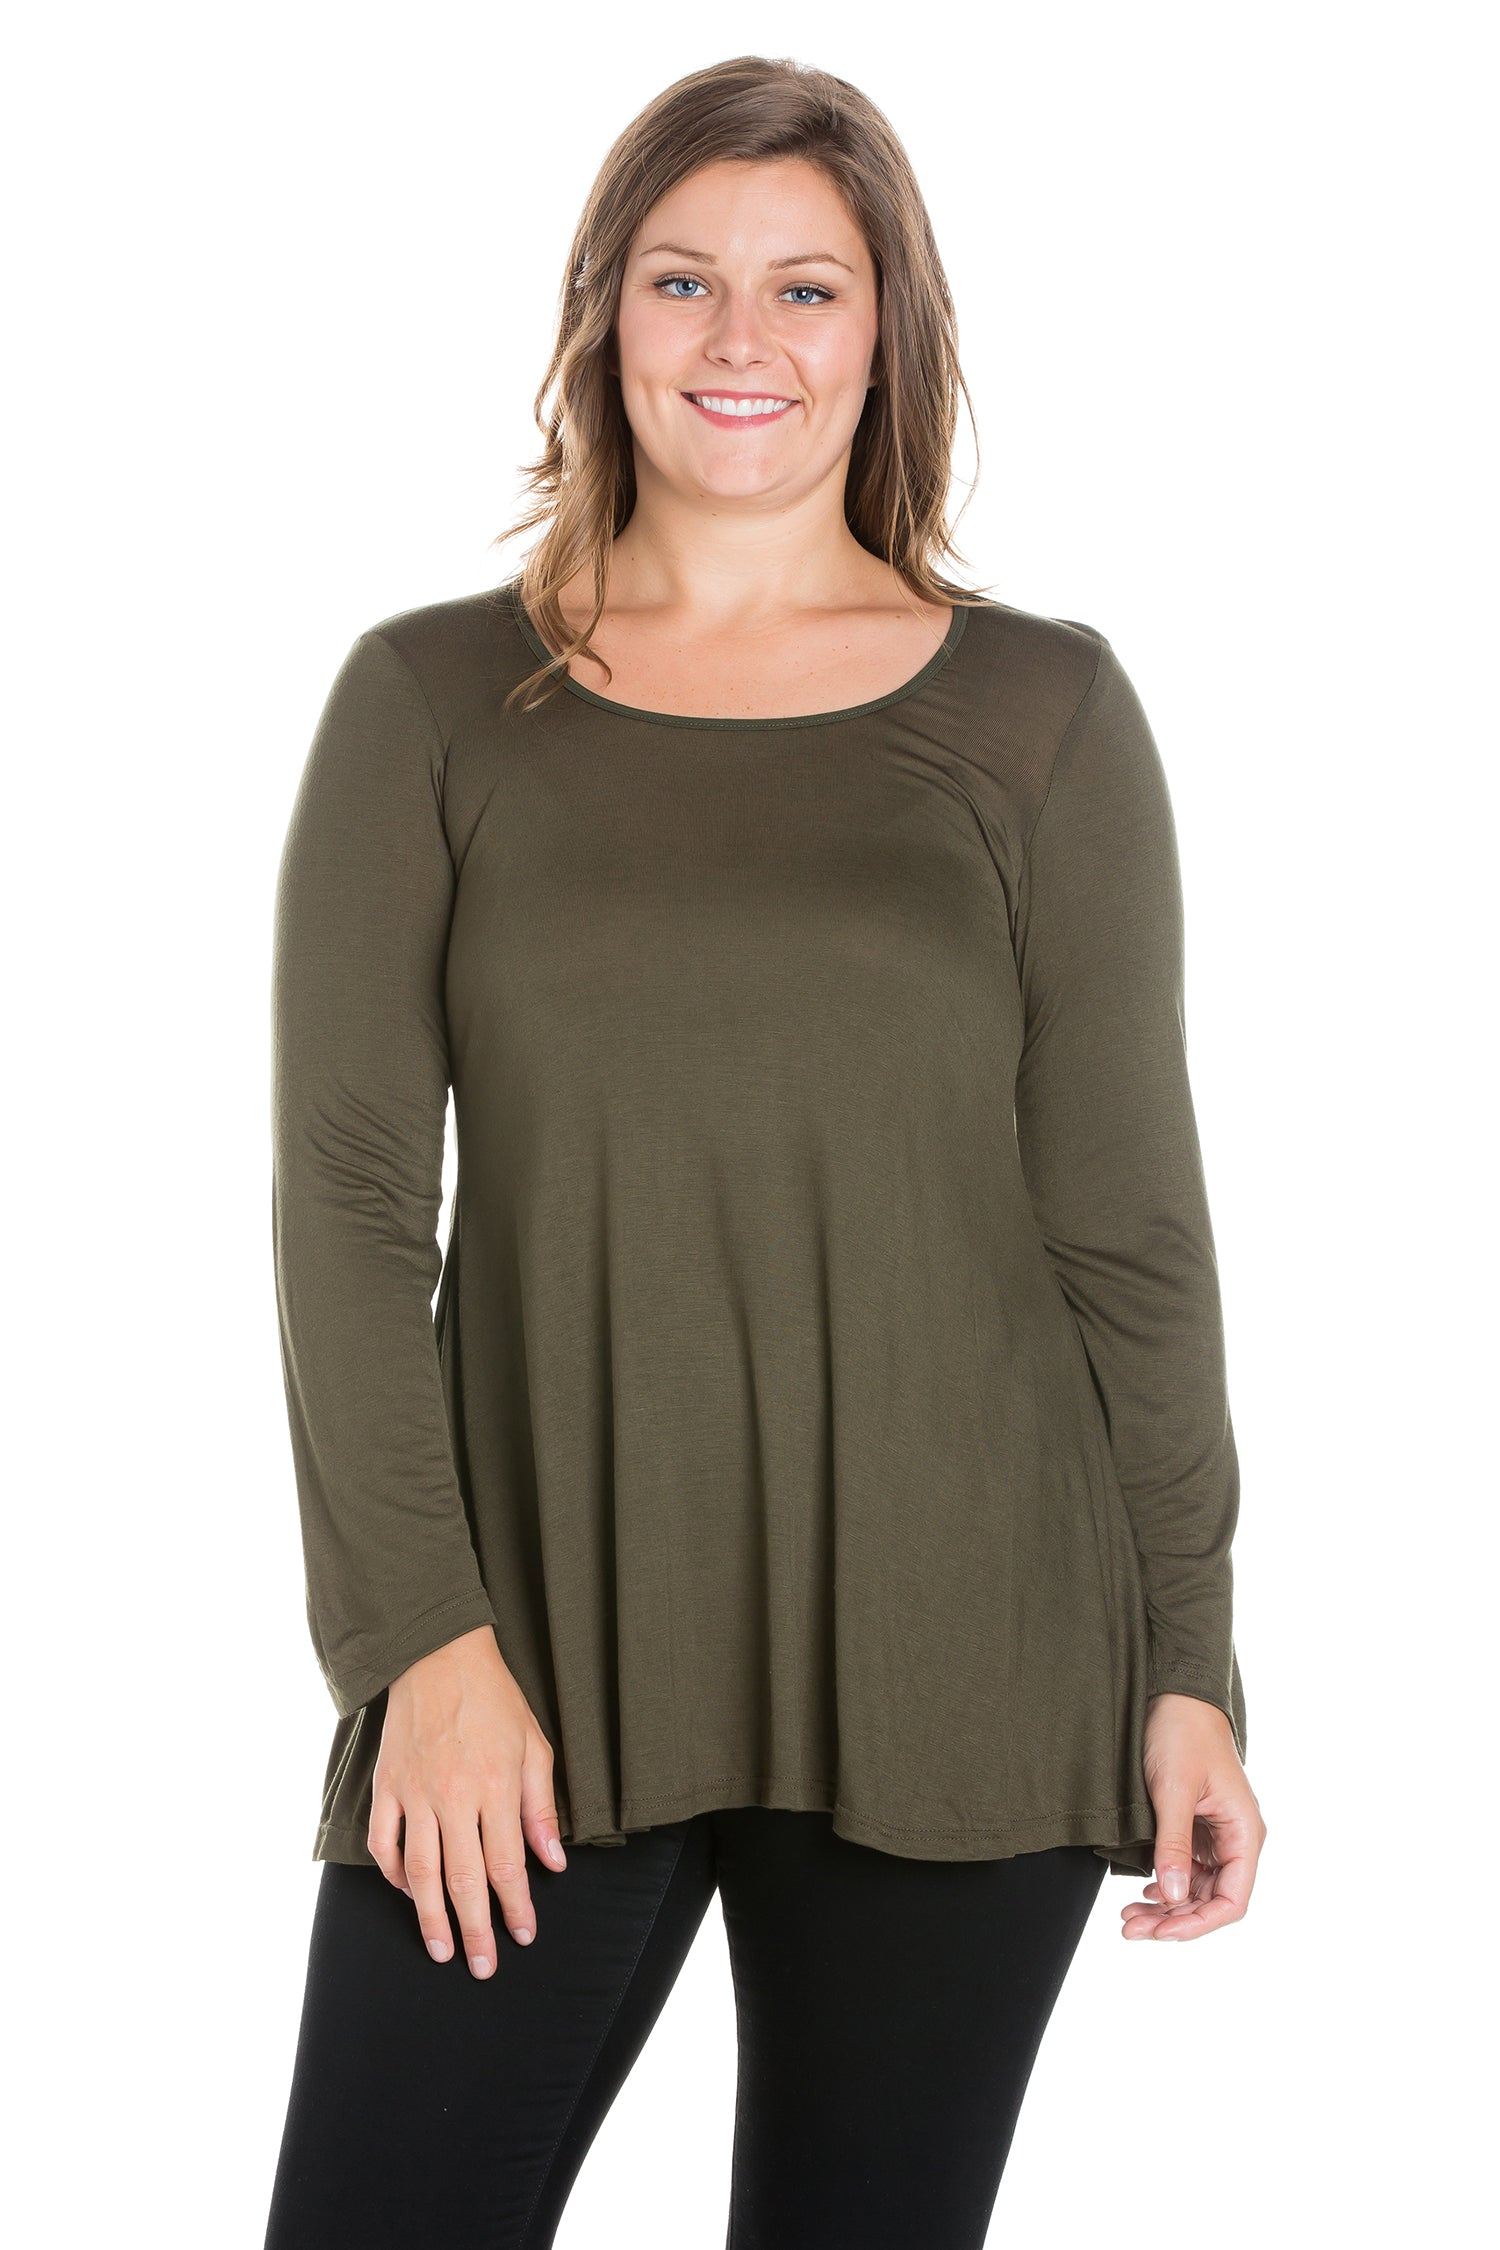 24seven Comfort Apparel Long Sleeve Swing Plus Size Tunic Top-TOPS-24Seven Comfort Apparel-ARMY-1X-24/7 Comfort Apparel